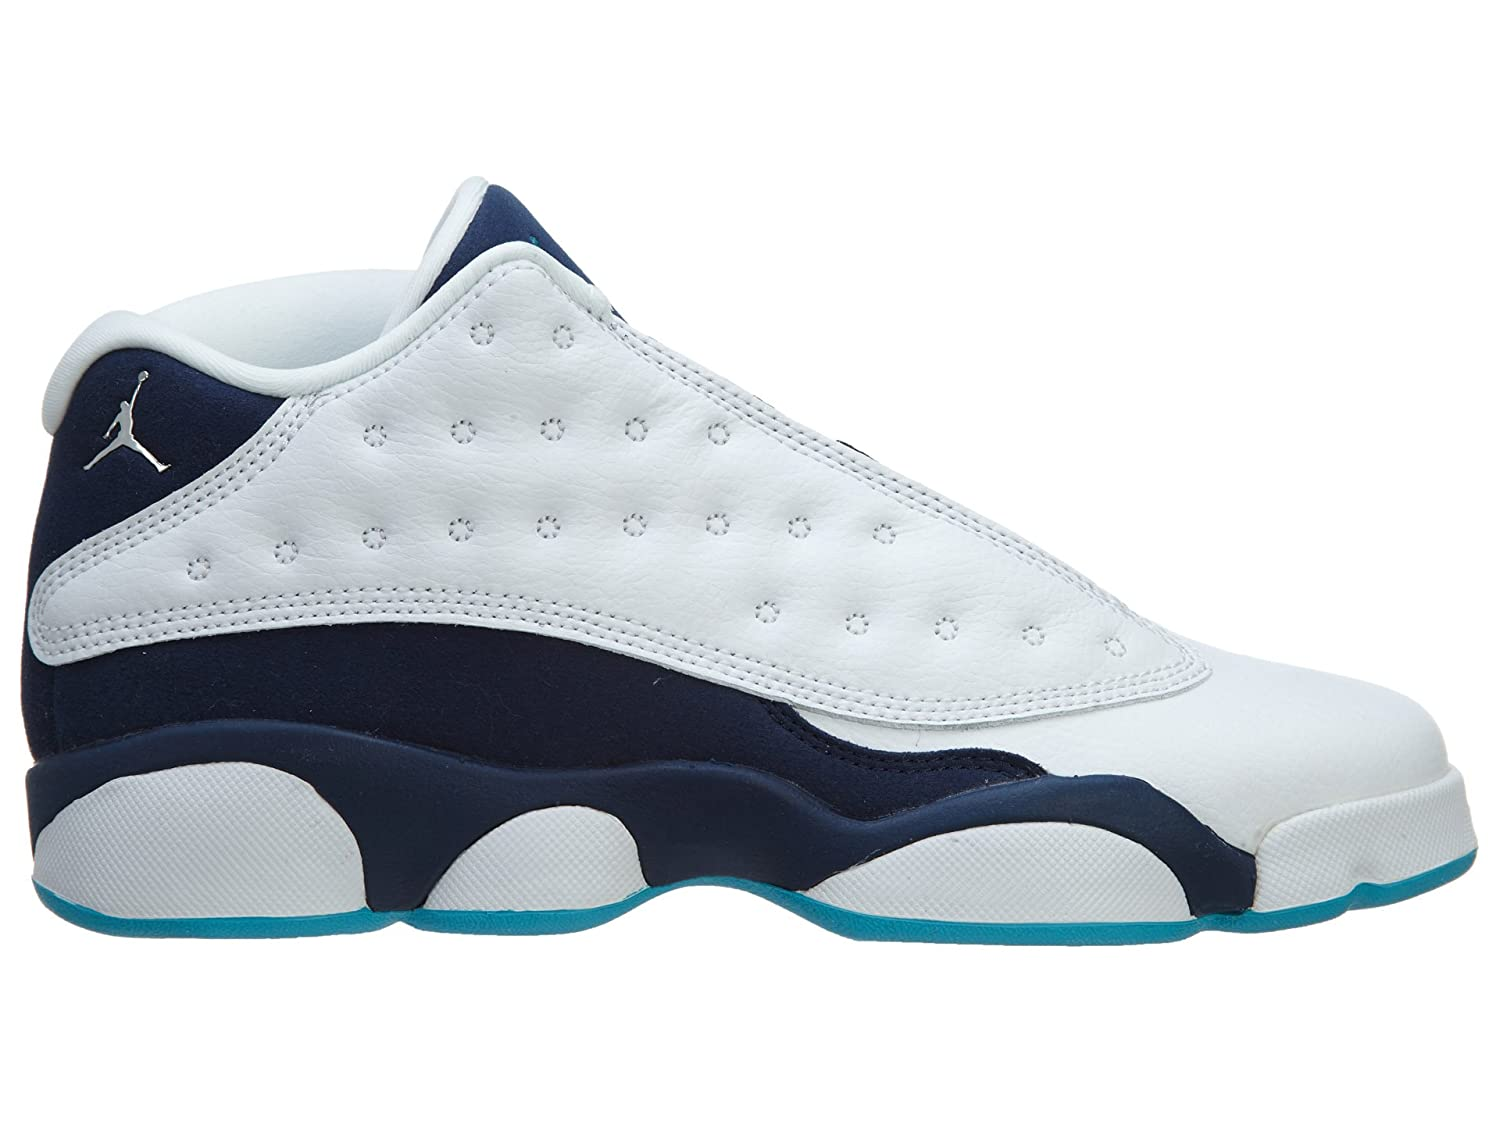 Air Jordan 13 Calabroni Bassi Amazon Y4VLIF9aKZ